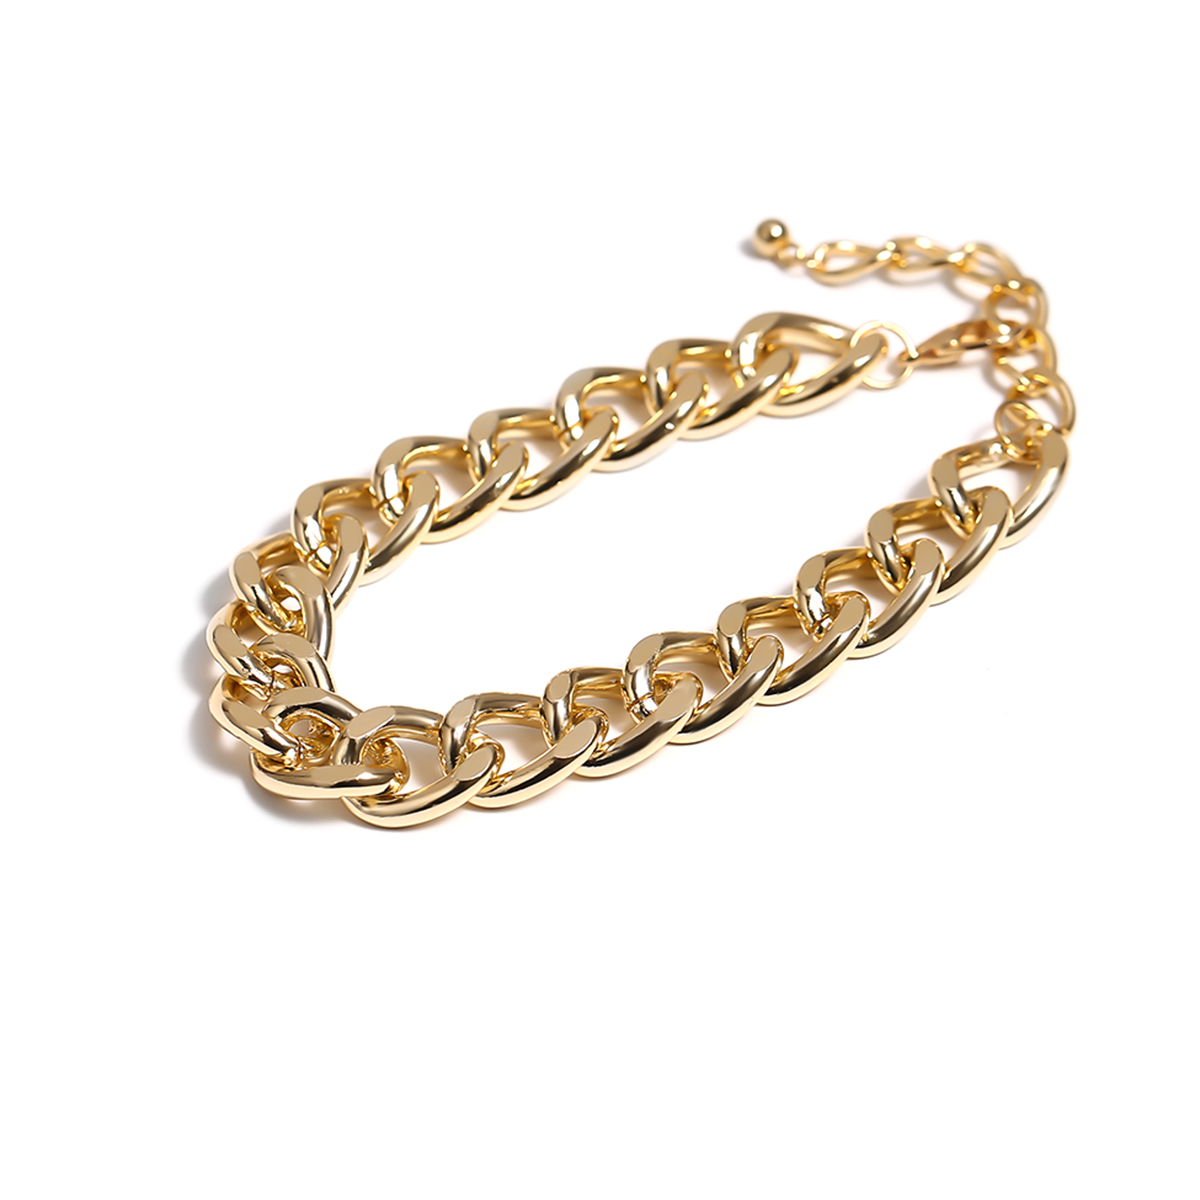 Lacteo Punk Thick Chunky Chain Anklet for Women Statment Fashion Anklet Hip Hop Golden Cross Chain Charm Anklet Female Jewelry 4